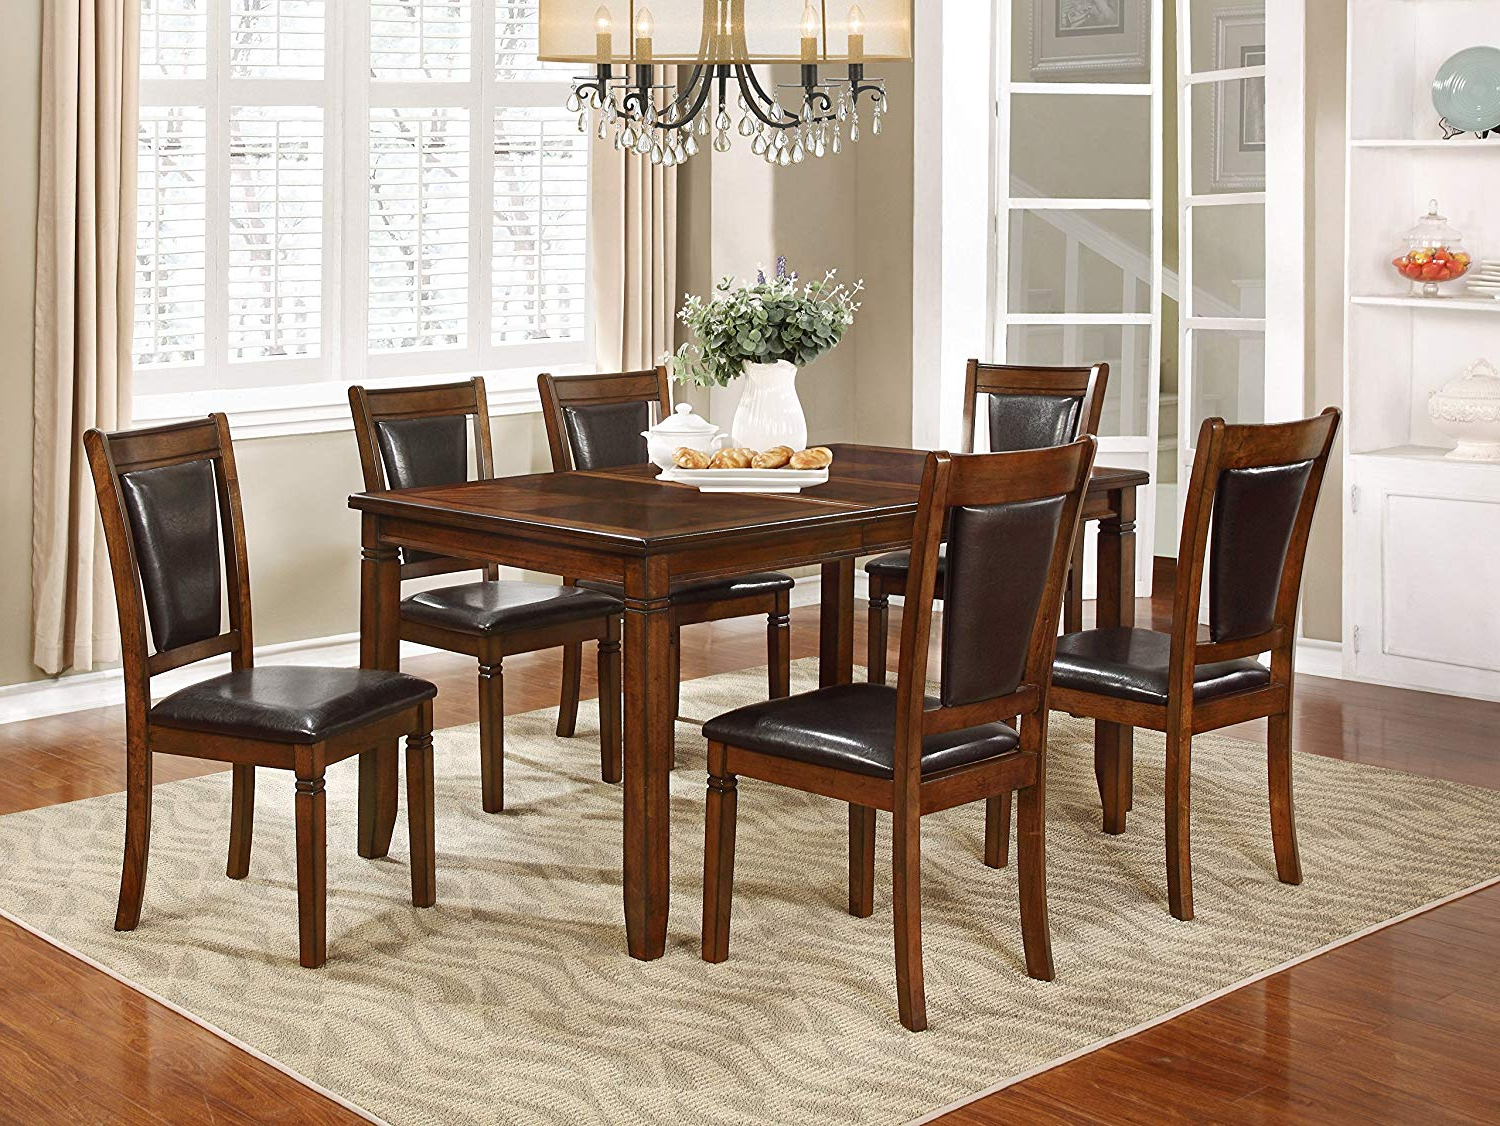 Nhi Express 7Pcs Wood Dining Set In Favorite Transitional 6 Seating Casual Dining Tables (View 13 of 25)